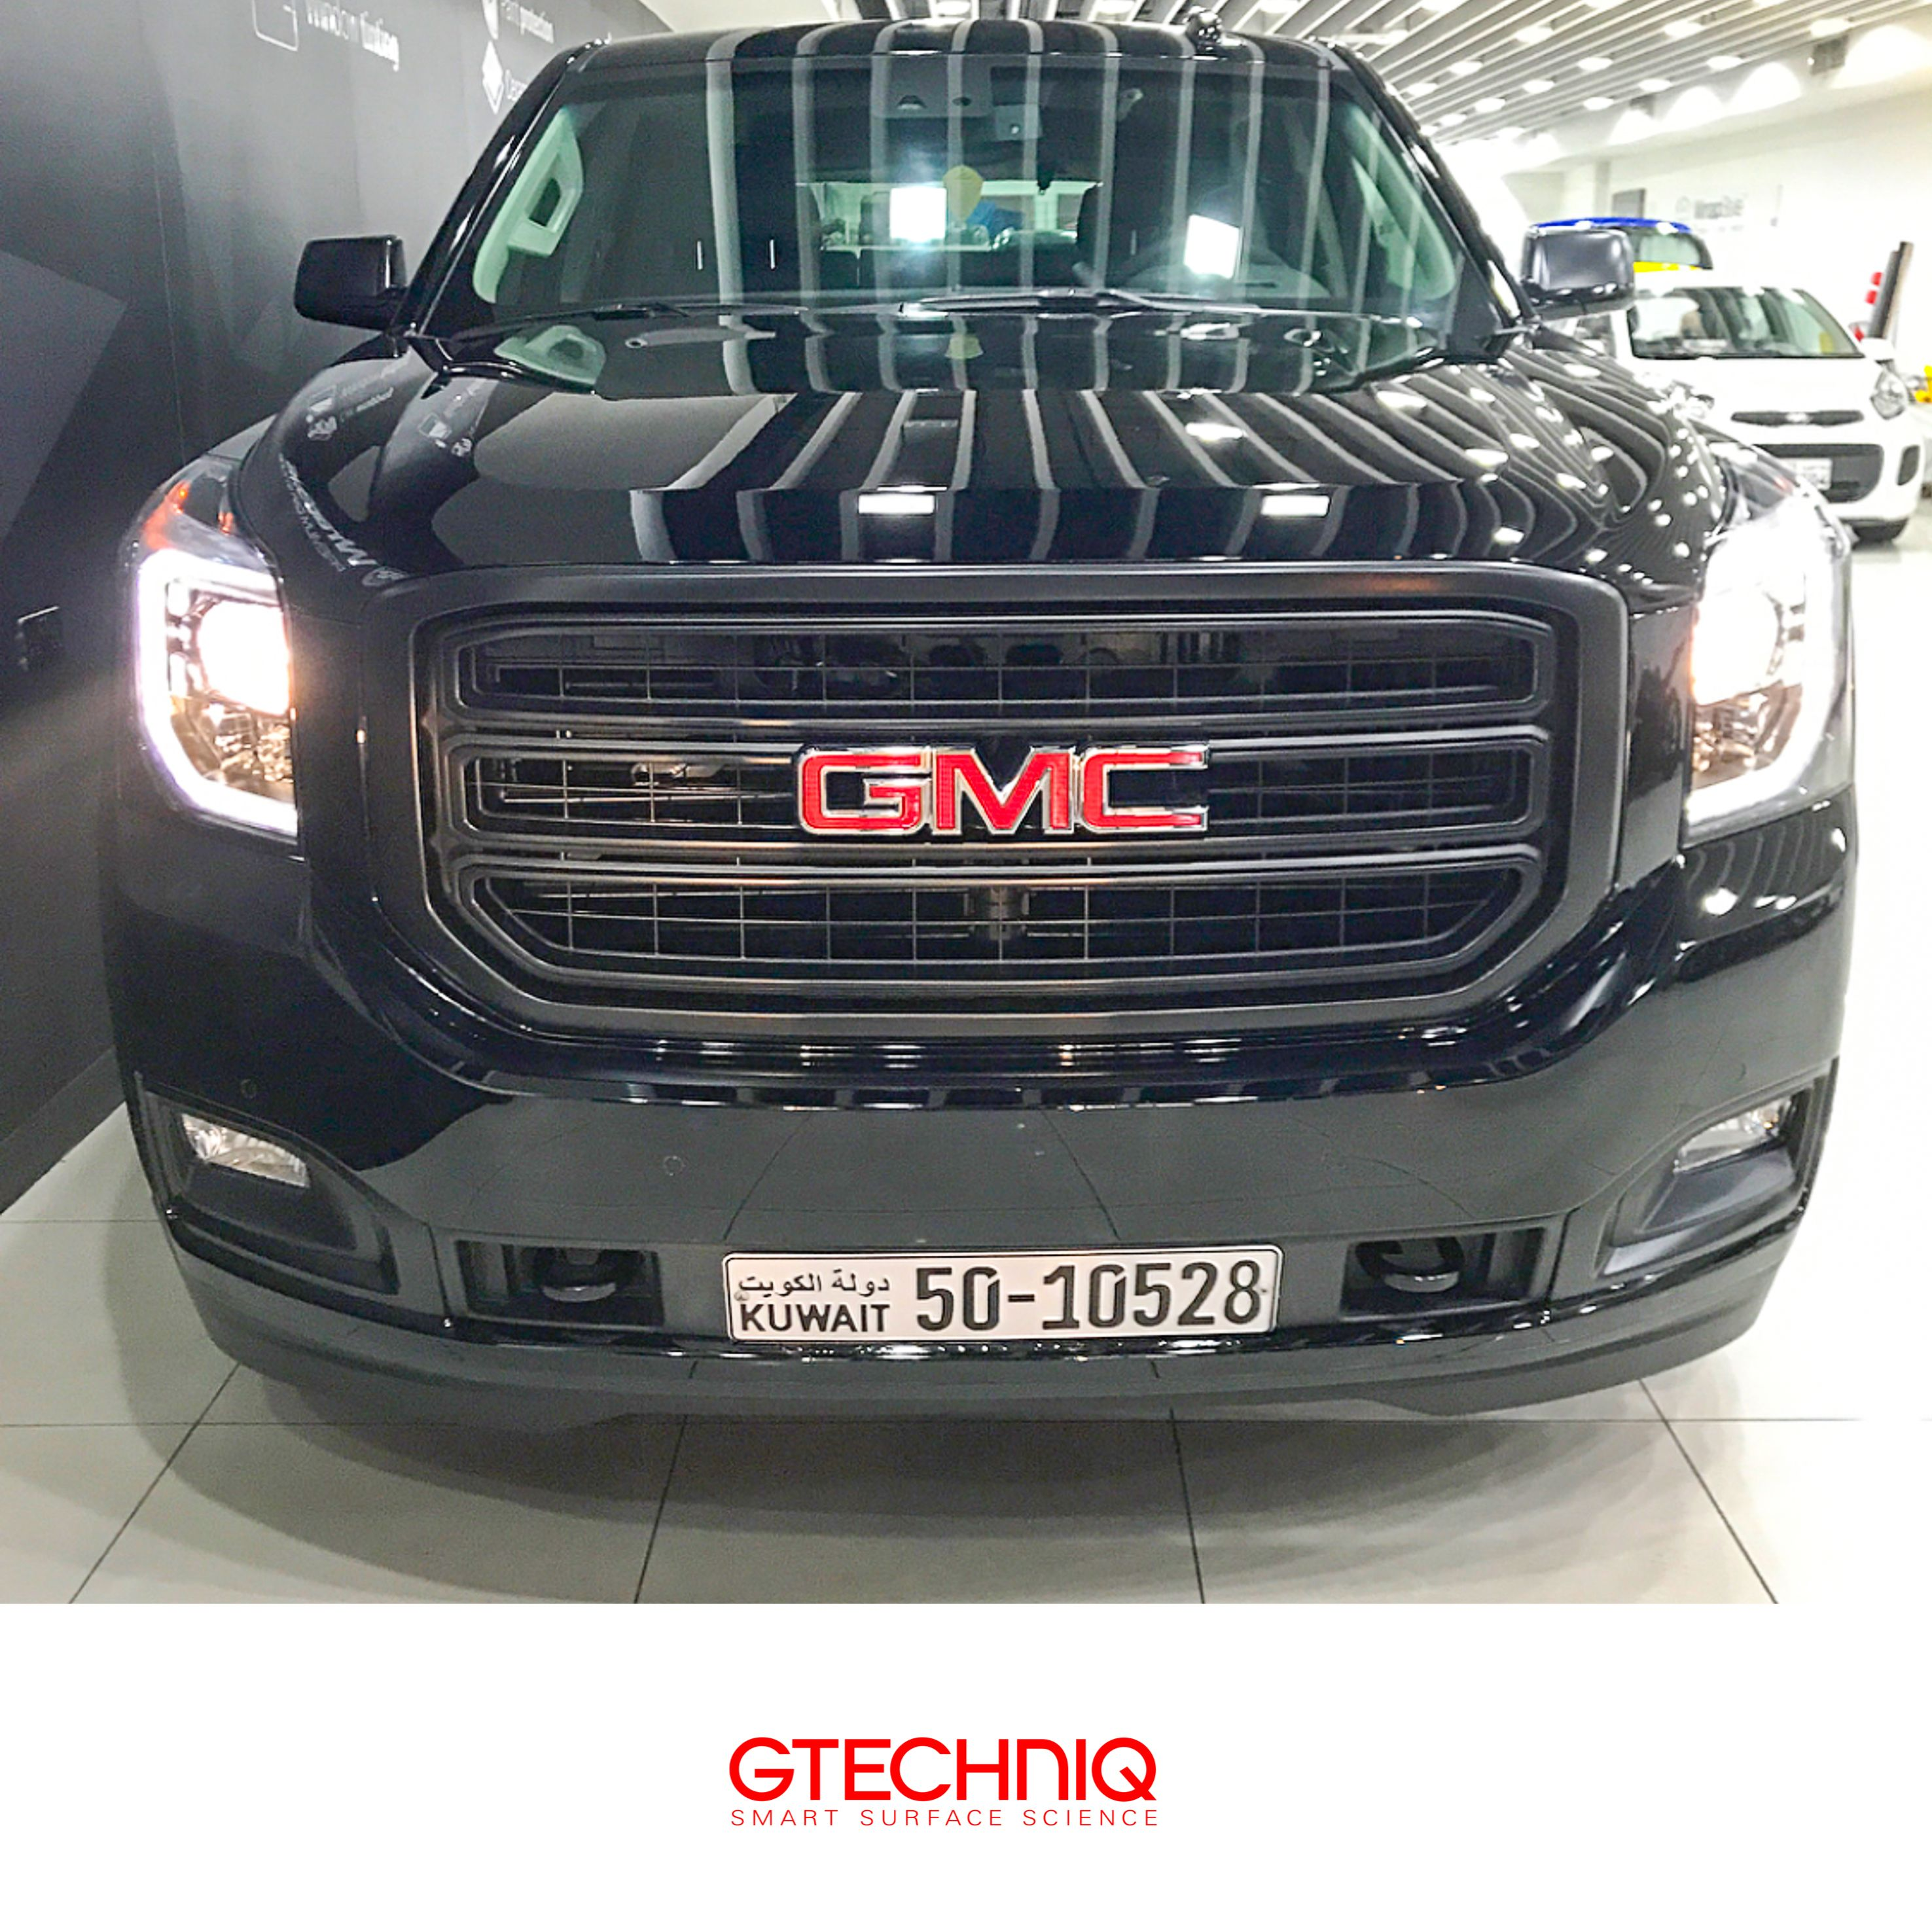 Gmc Yukon Protected By Gtechniq And Our Premium Coating Crystalserum Protection Professionally Applied By Our Accredited Detailer Wrap Super Cars Kuwait Gmc